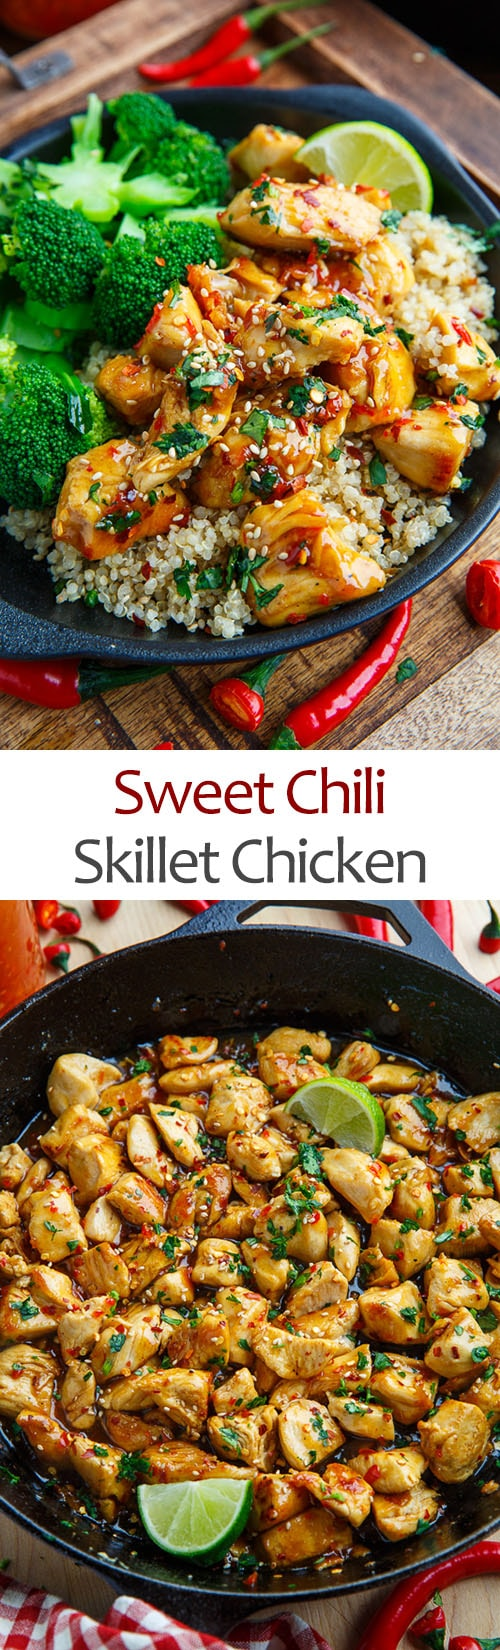 Skillet Sweet Chili Chicken